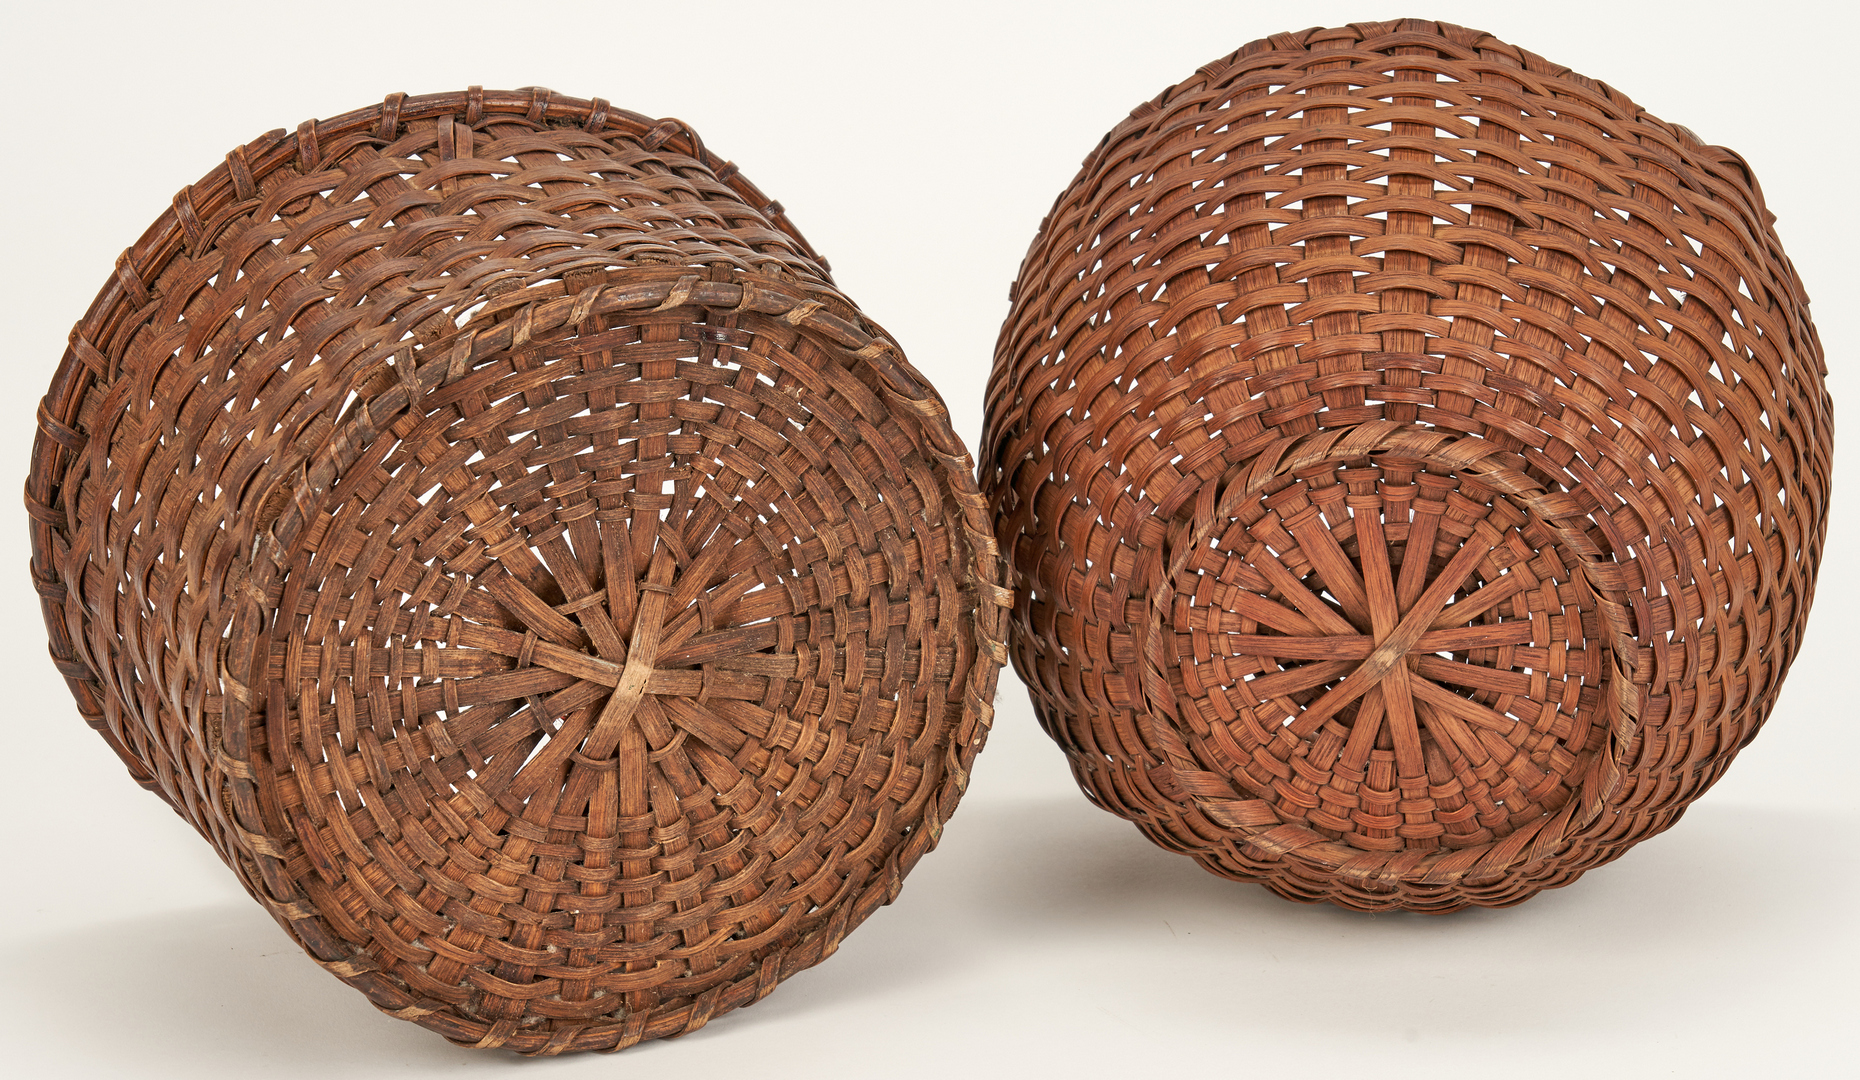 Lot 654: 6 Tennessee & Southern Oak Baskets, Late 19th/Early 20th Century